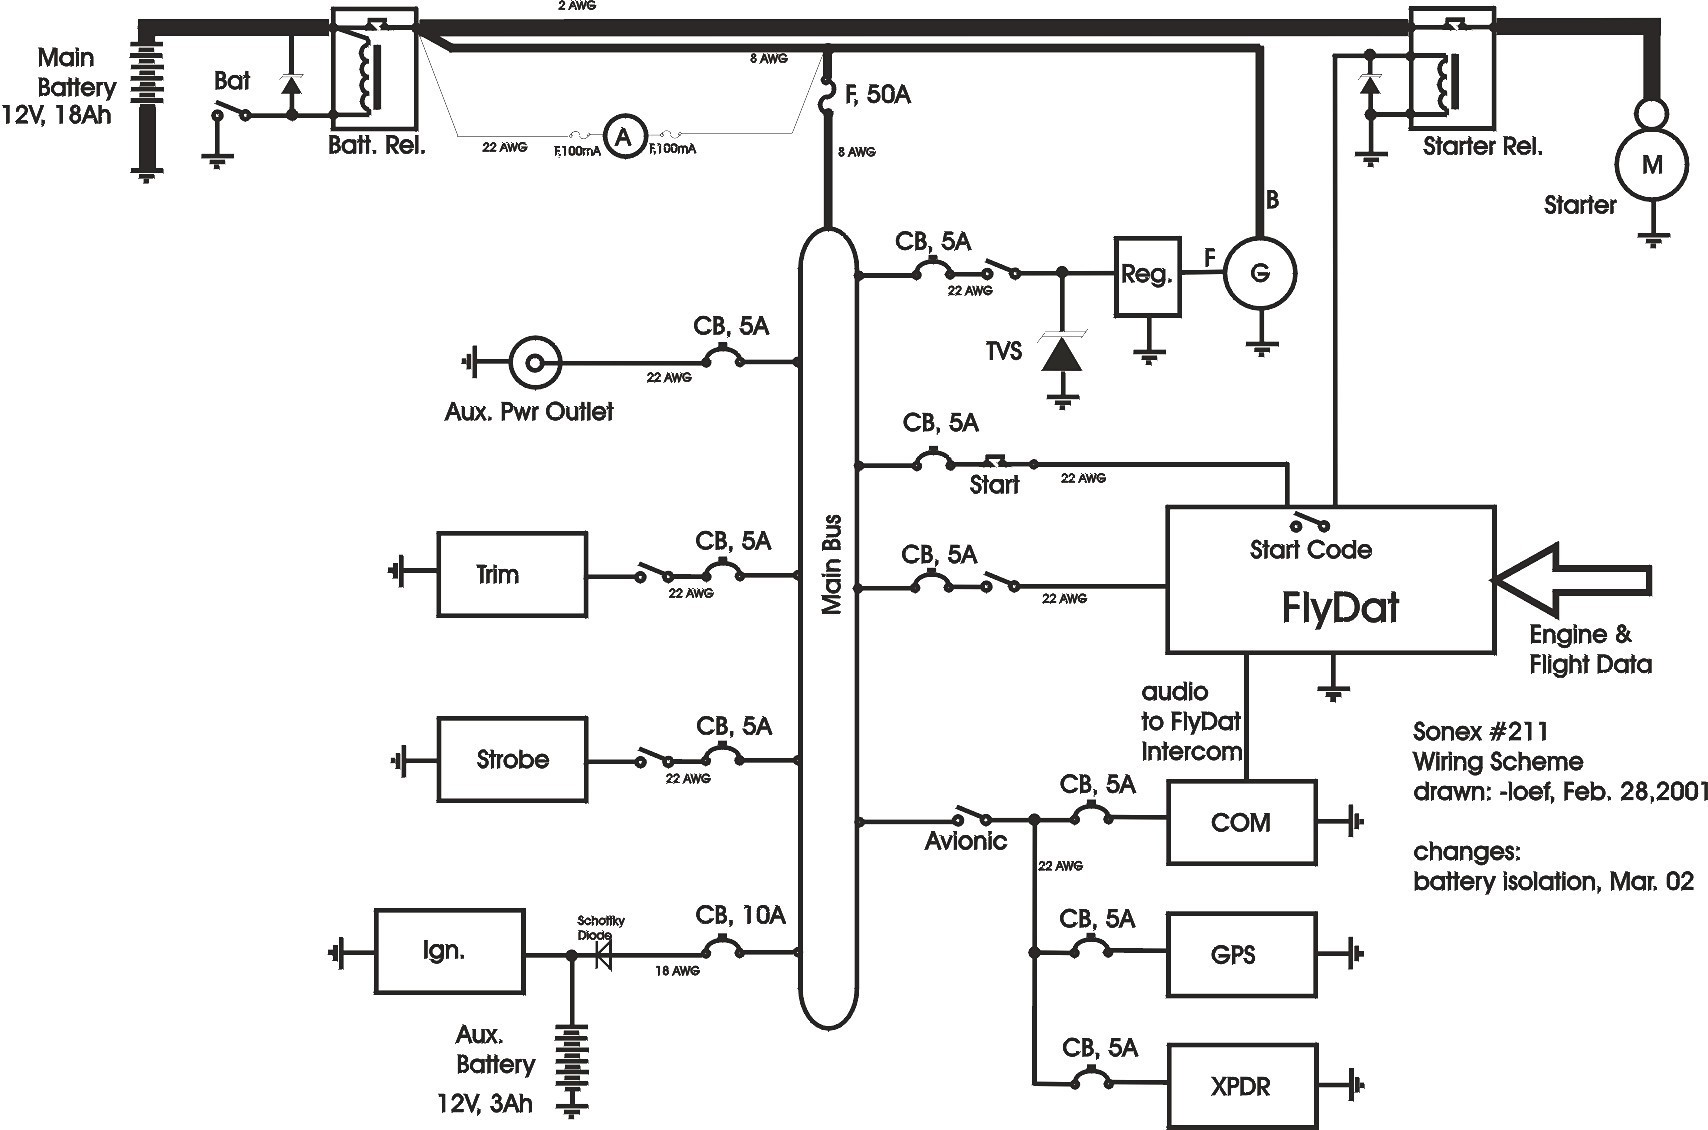 Dyna 2000i Wiring General Wiring Diagrams